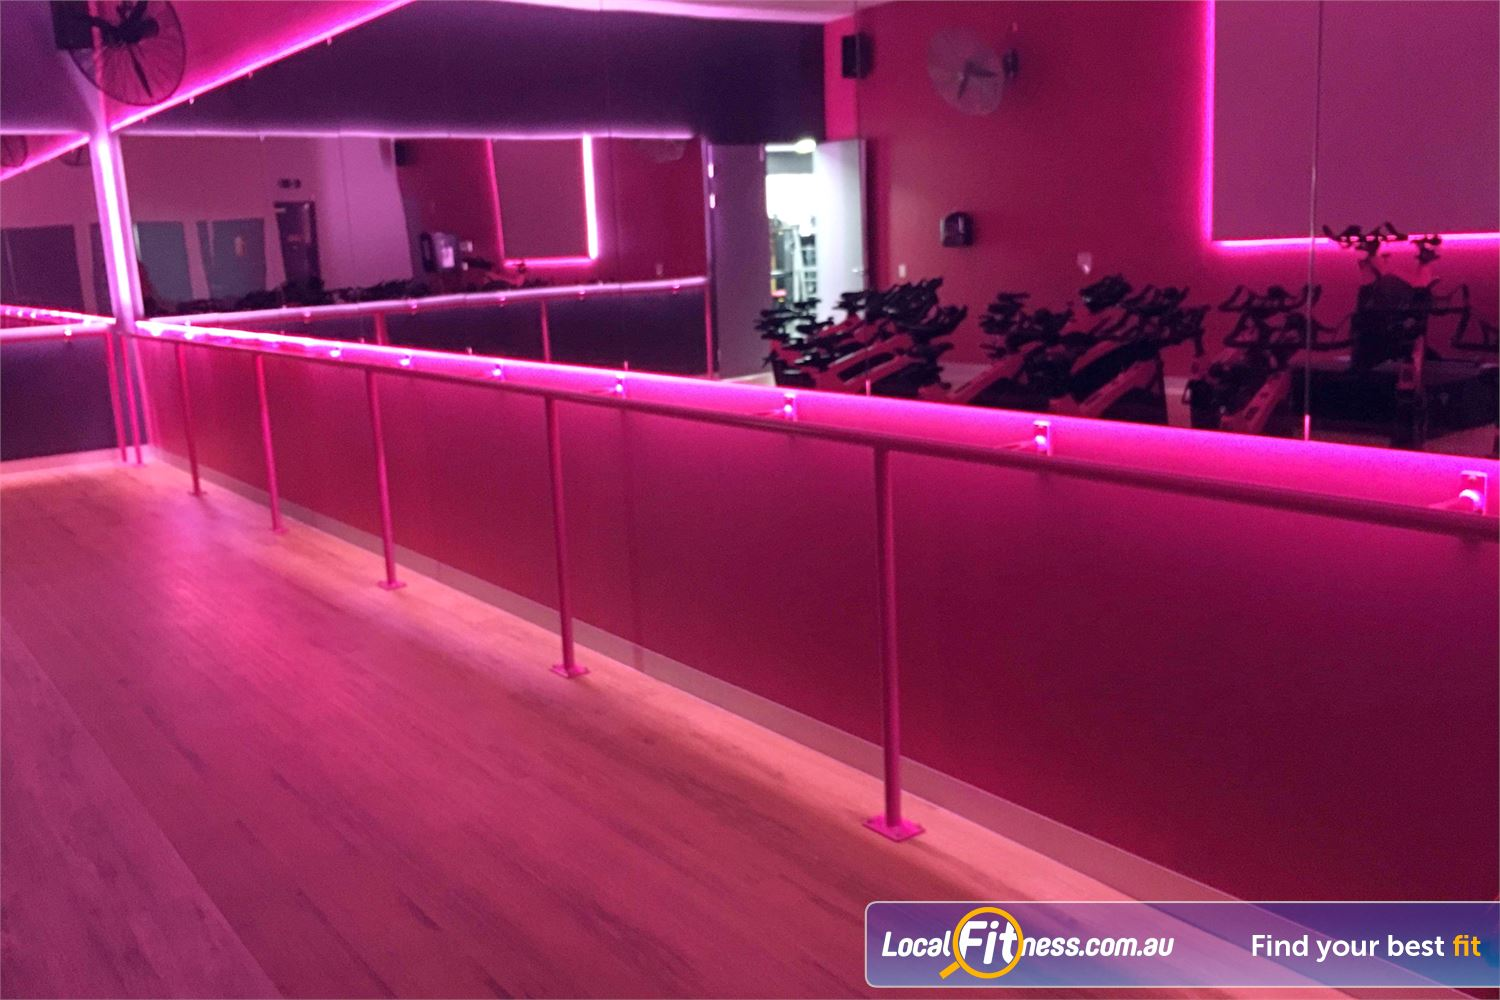 Fernwood Fitness Near Varsity Lakes Enjoy the nightlife vibes in our Robina cycle studio.